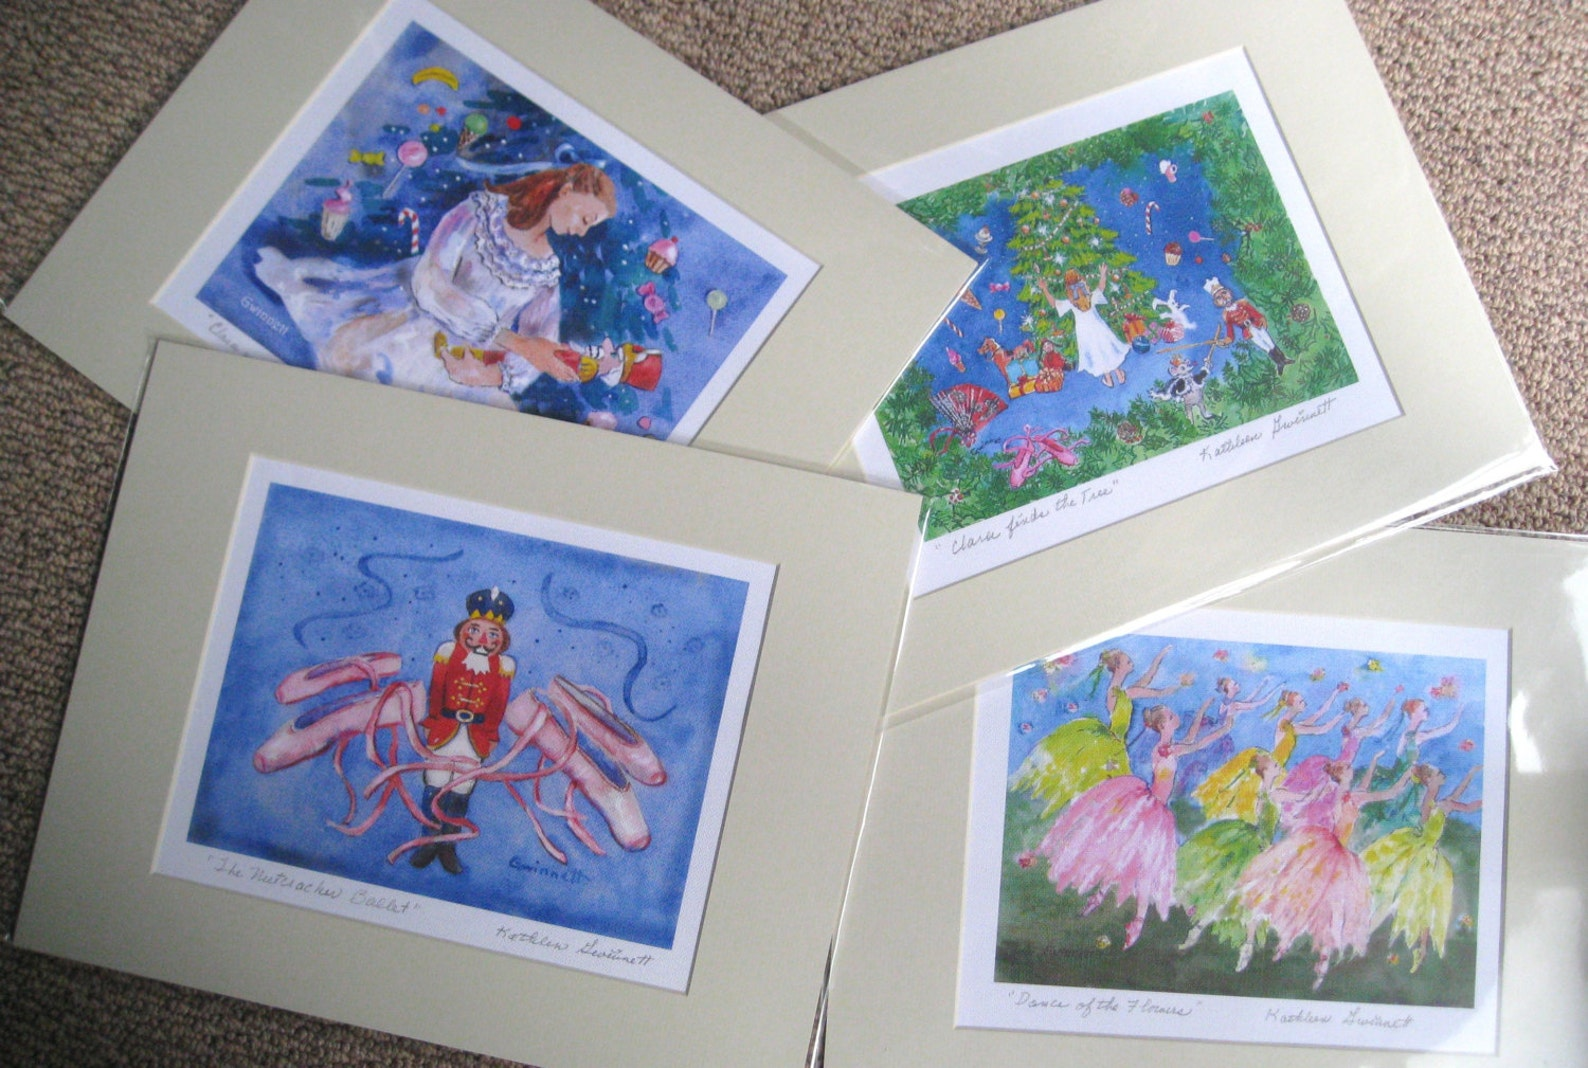 nutcracker & ballet shoes print 11x14 inches matted.signed by artist